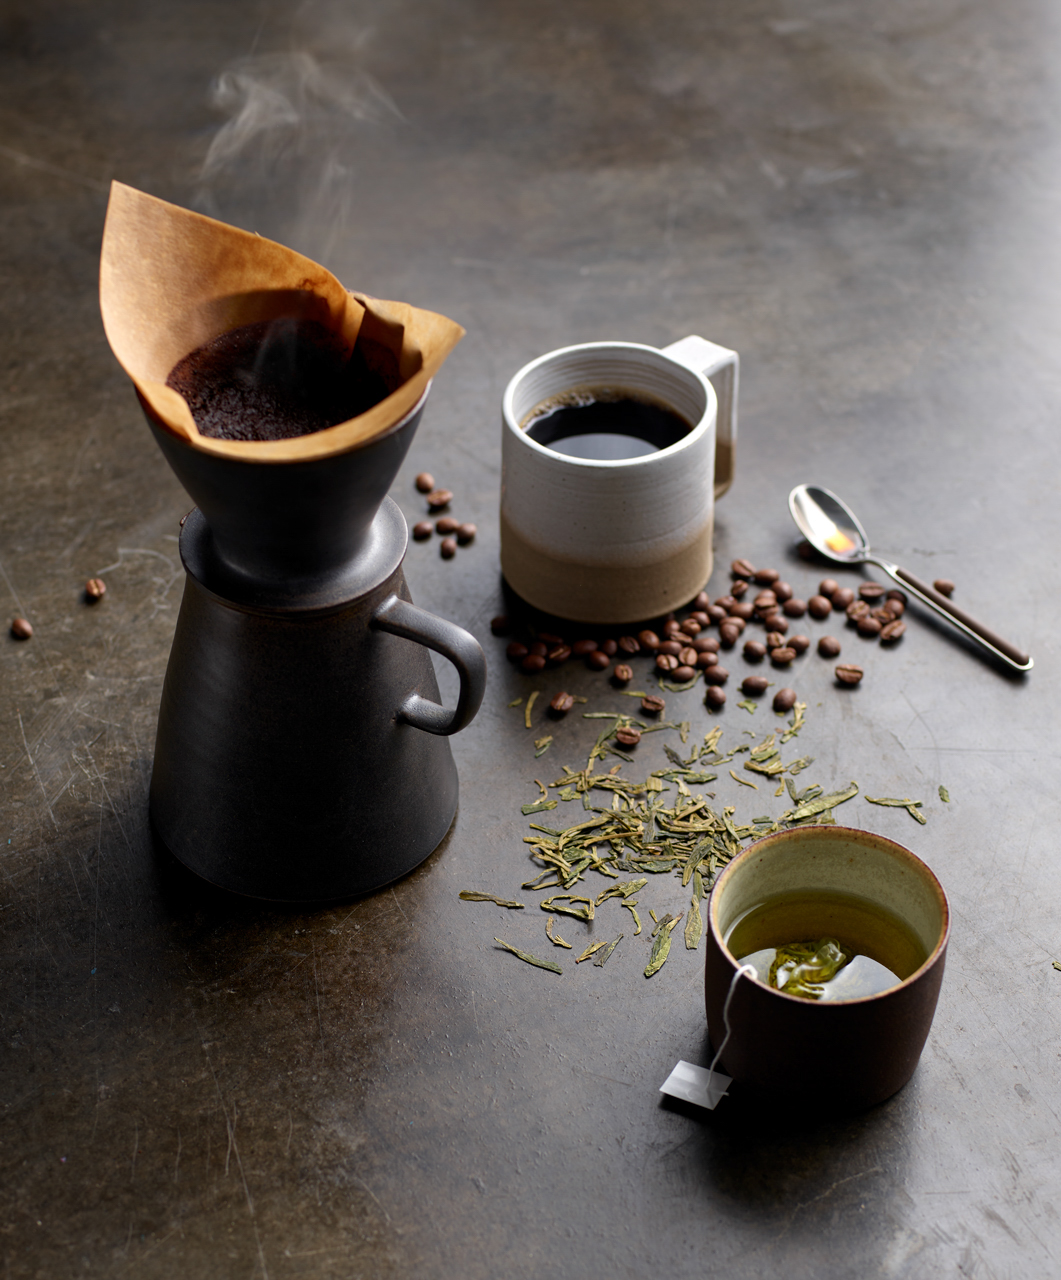 food stylist in San Francisco - Pour over coffee - Caffeine ingredeint for Skin Rx adverising Robert Valentine art director photographed by Laurie Frankel photographer